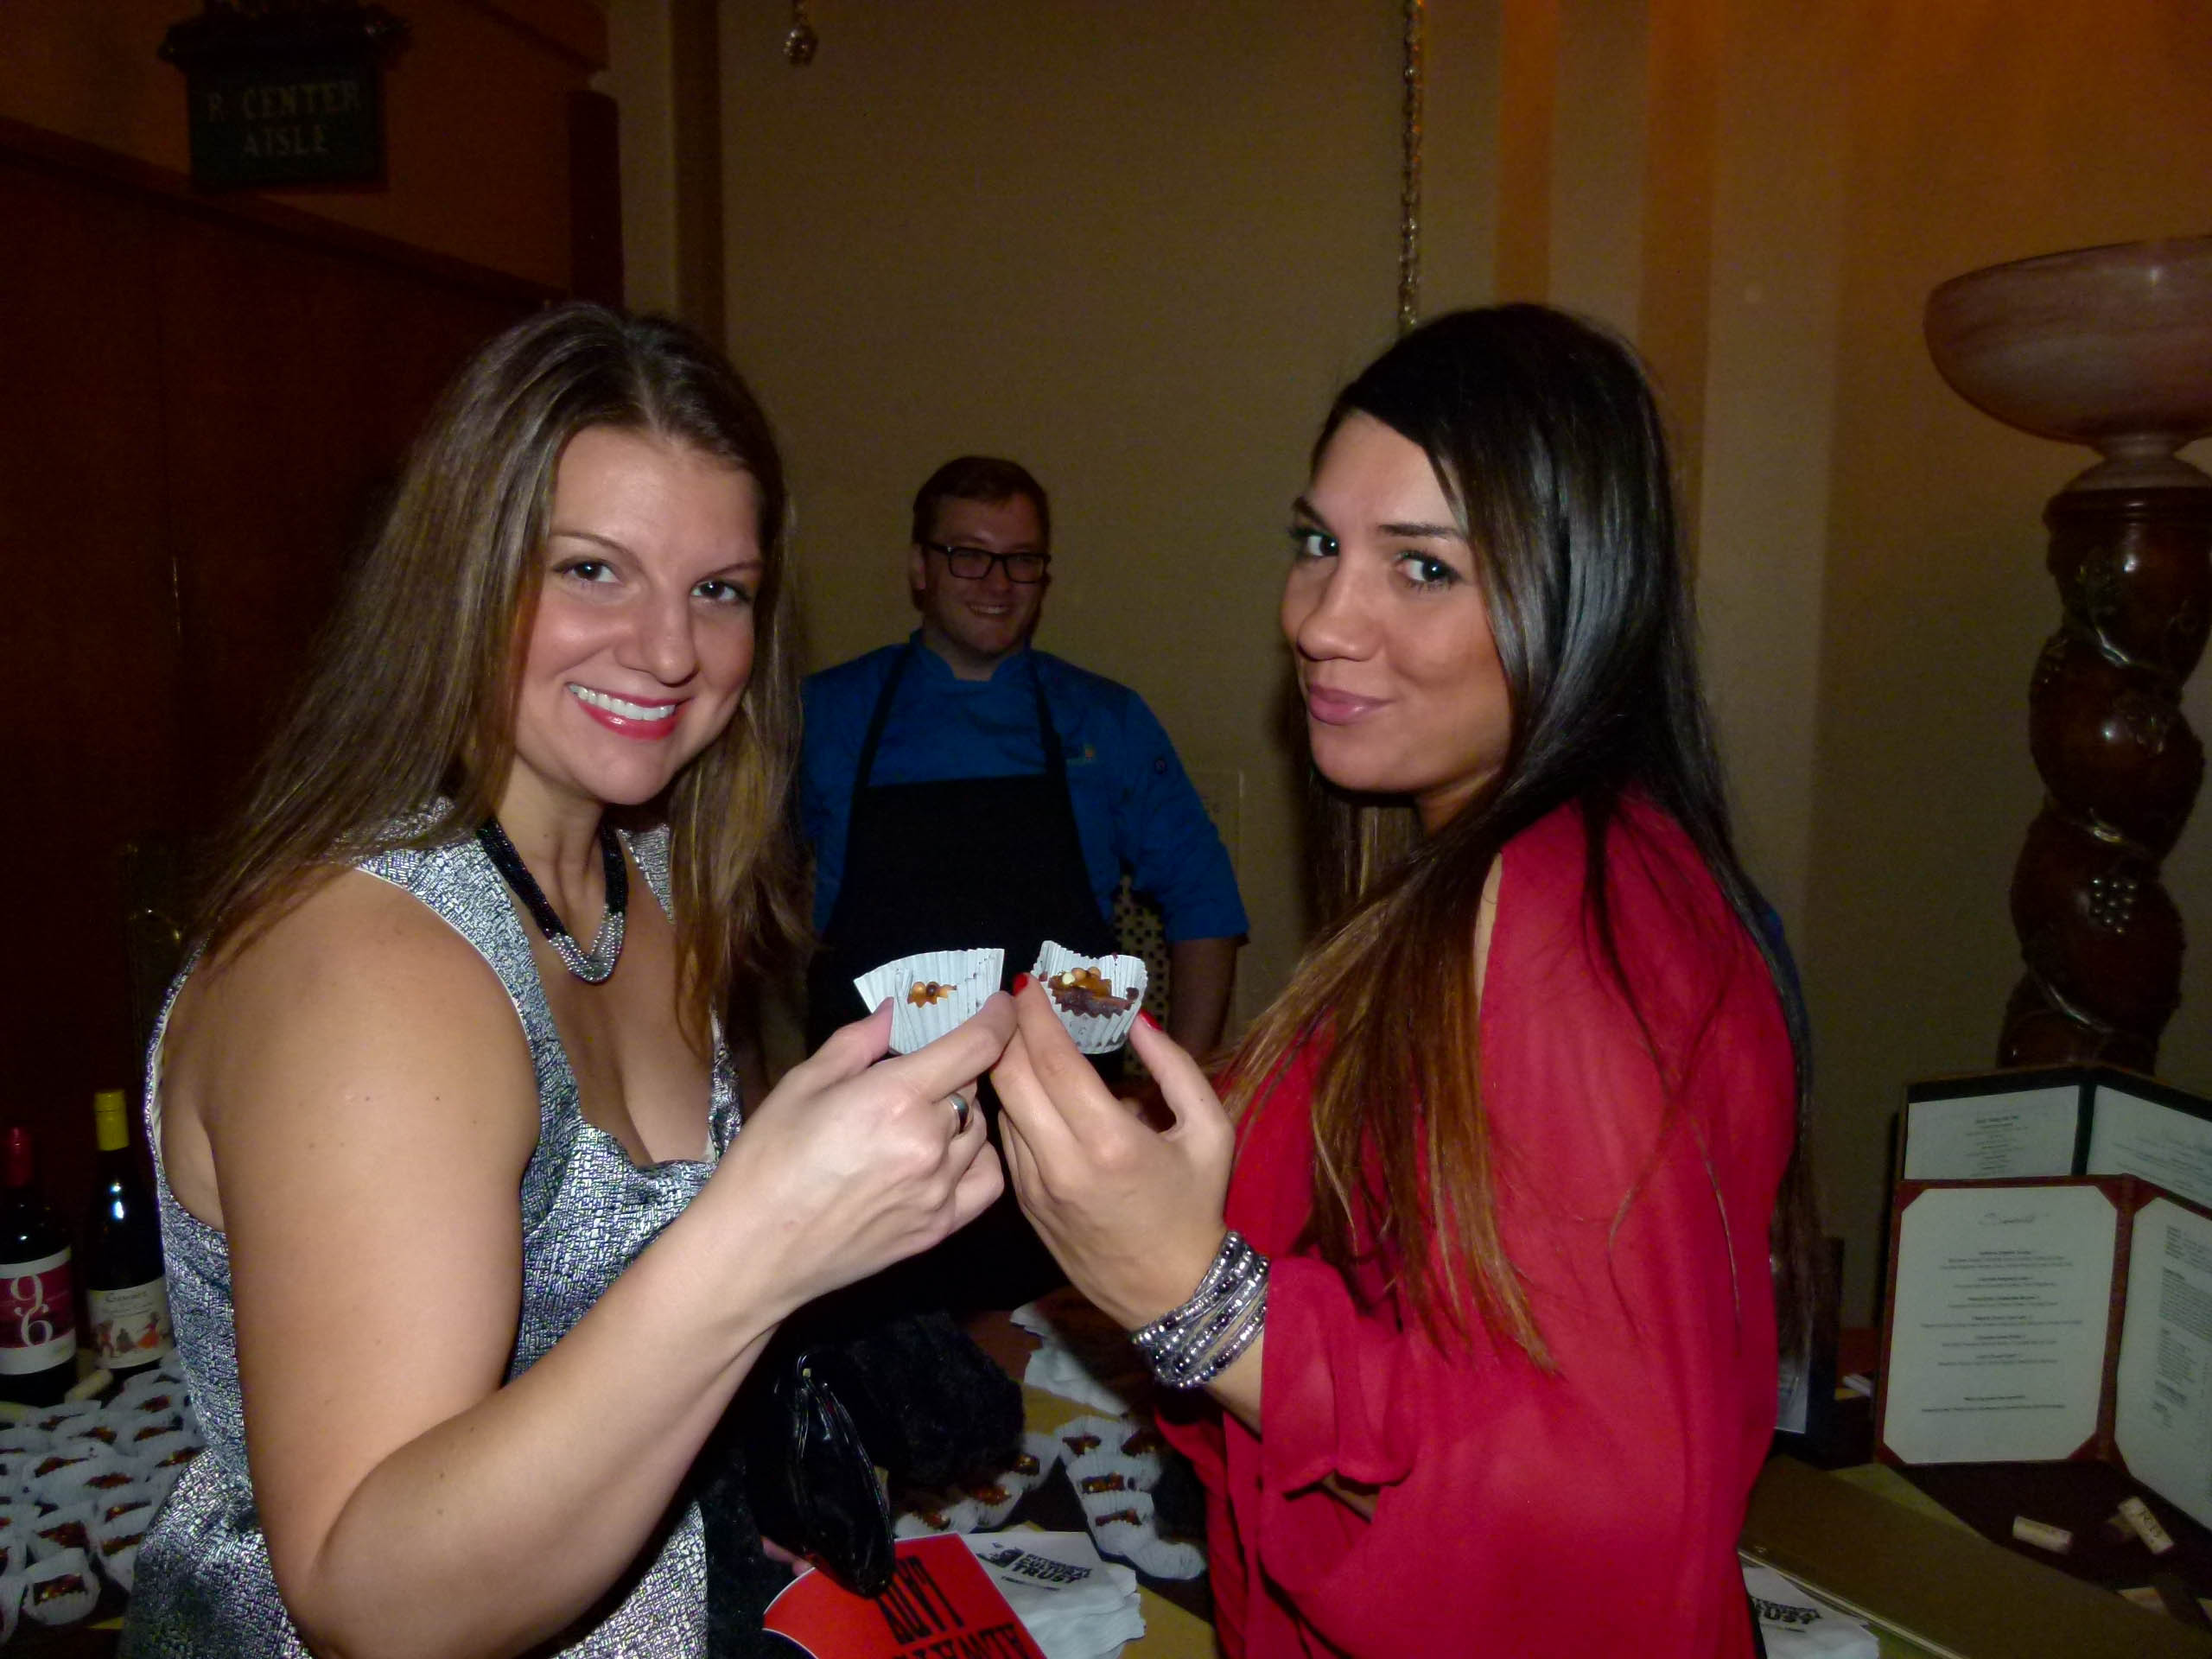 Women (and men) love chocolate, including Lisa Sipusic (L) and Alexarae Wehlau. They are ready to indulge in Flourless Chocolate Cake with Rich Dulce De Leche Cream and White, Milk, and Dark Chocolate Crisp Pearls from Sonoma Grill, as Scott Skaggs looks on.